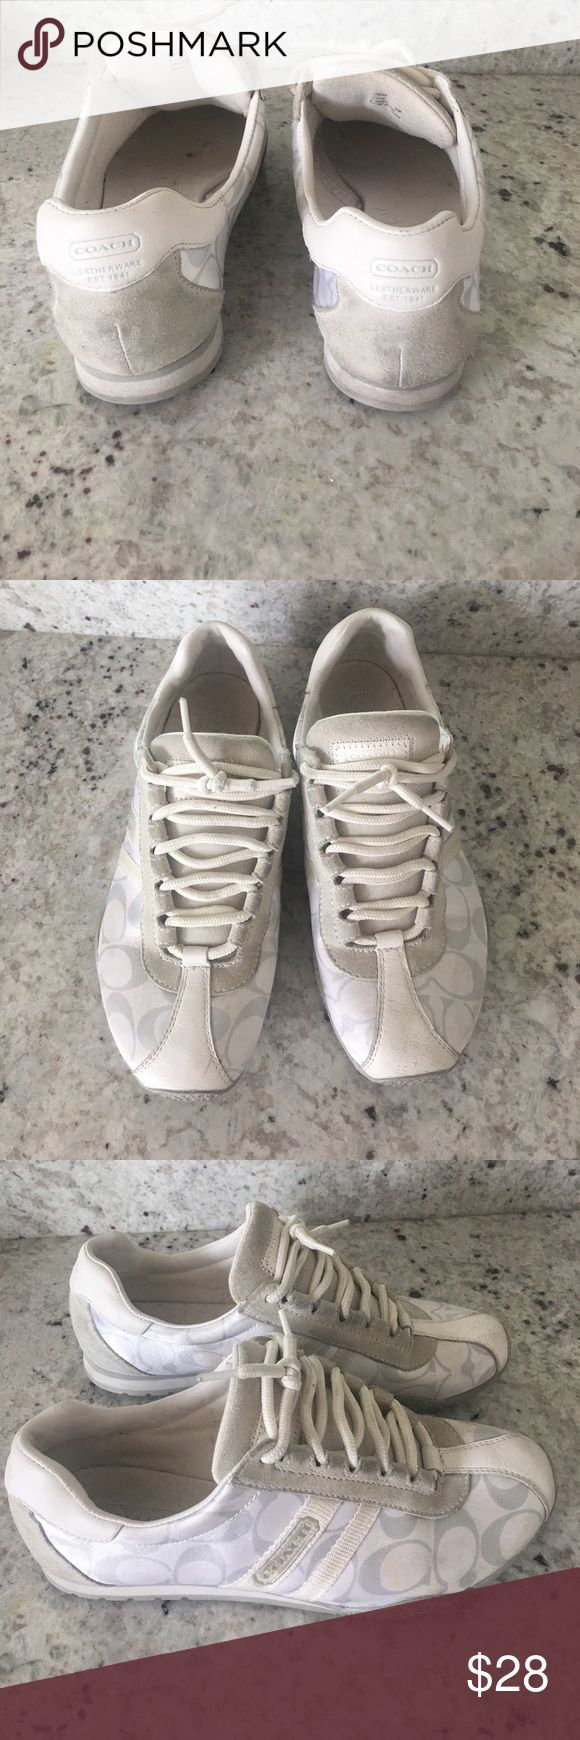 Coach tennis shoes White coach tennis shoes has some scuffs but still in great condition Coach Shoes Sneakers